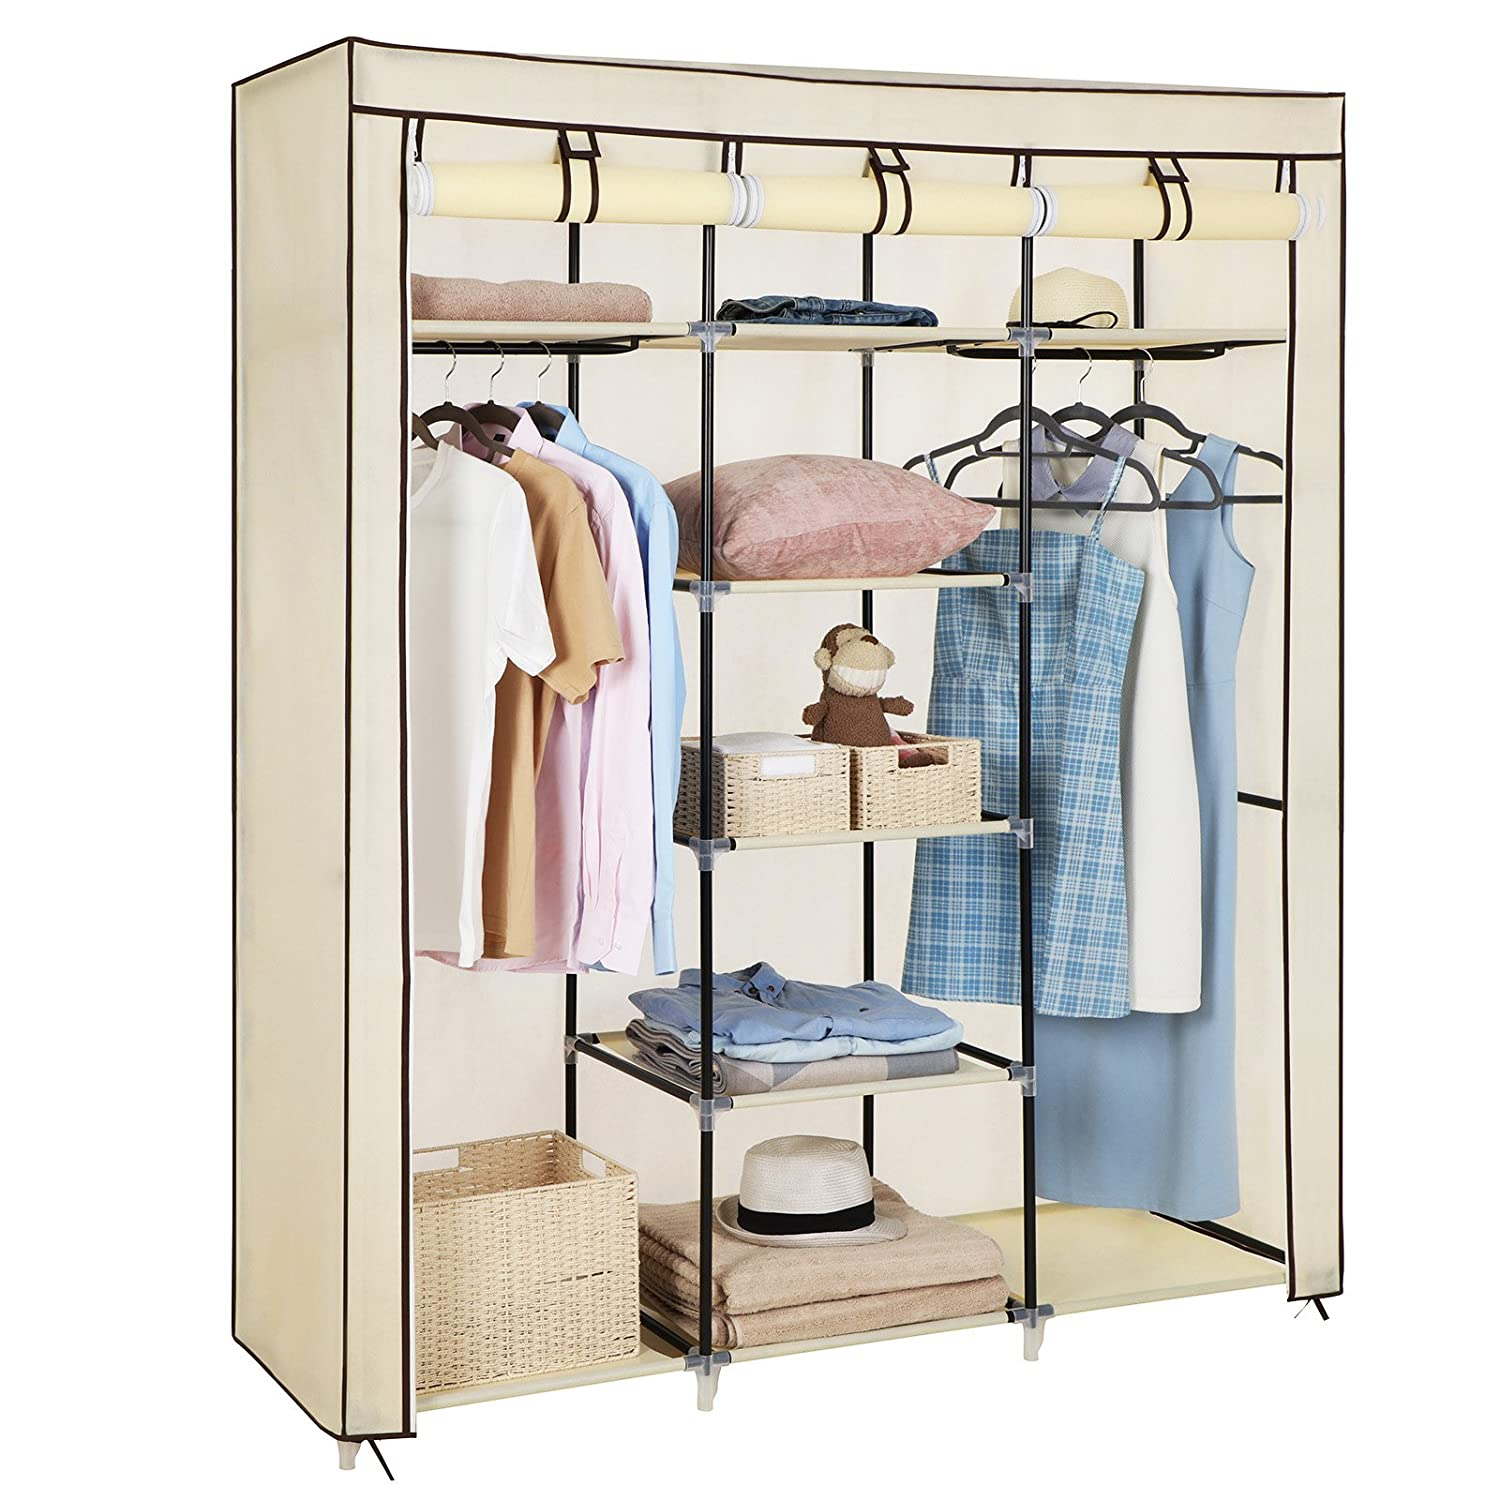 worldwide reader to your organizing digest cleaning off closet s storage trick simplifies radically season home wardrobe change over this seasonal how store clothes clothing